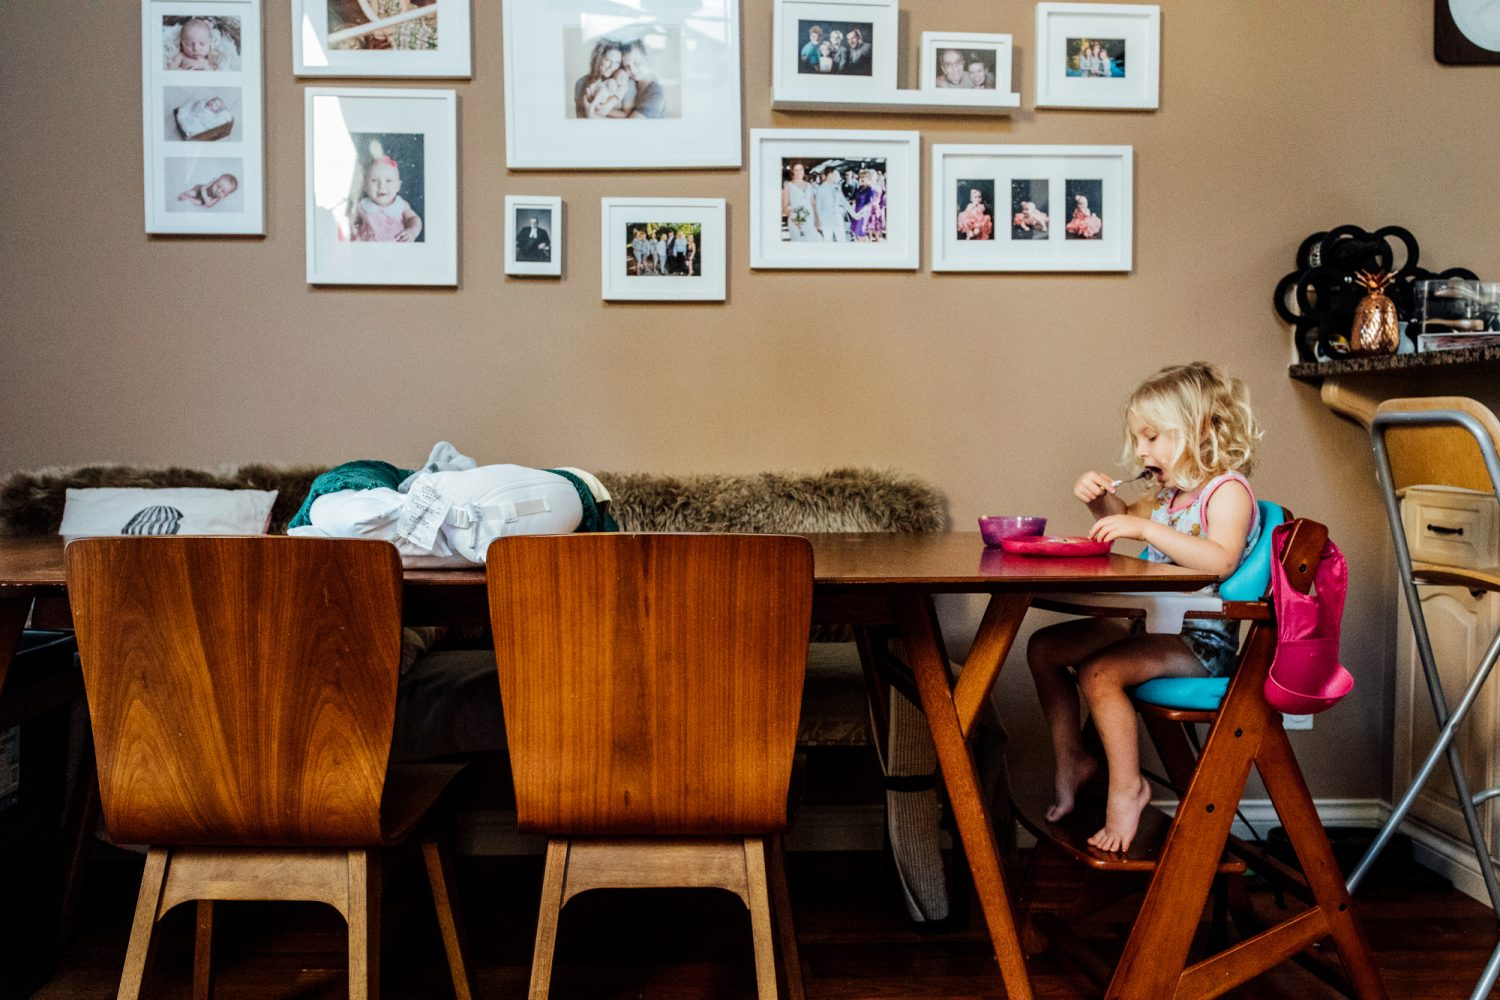 young girl eats pancakes at table alone